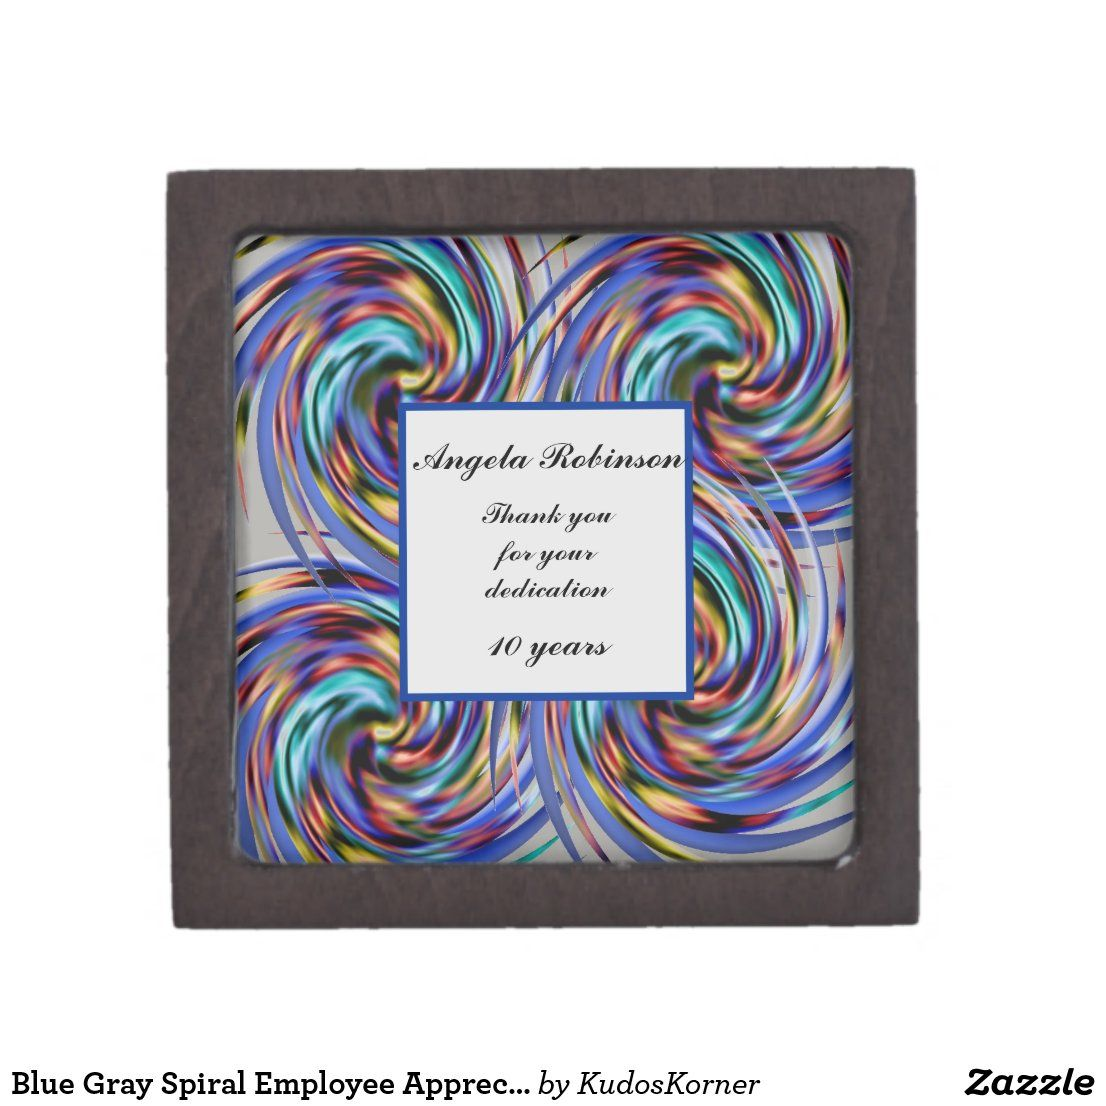 Blue Gray Spiral Employee Appreciation Recognition Gift Box | Zazzle.com